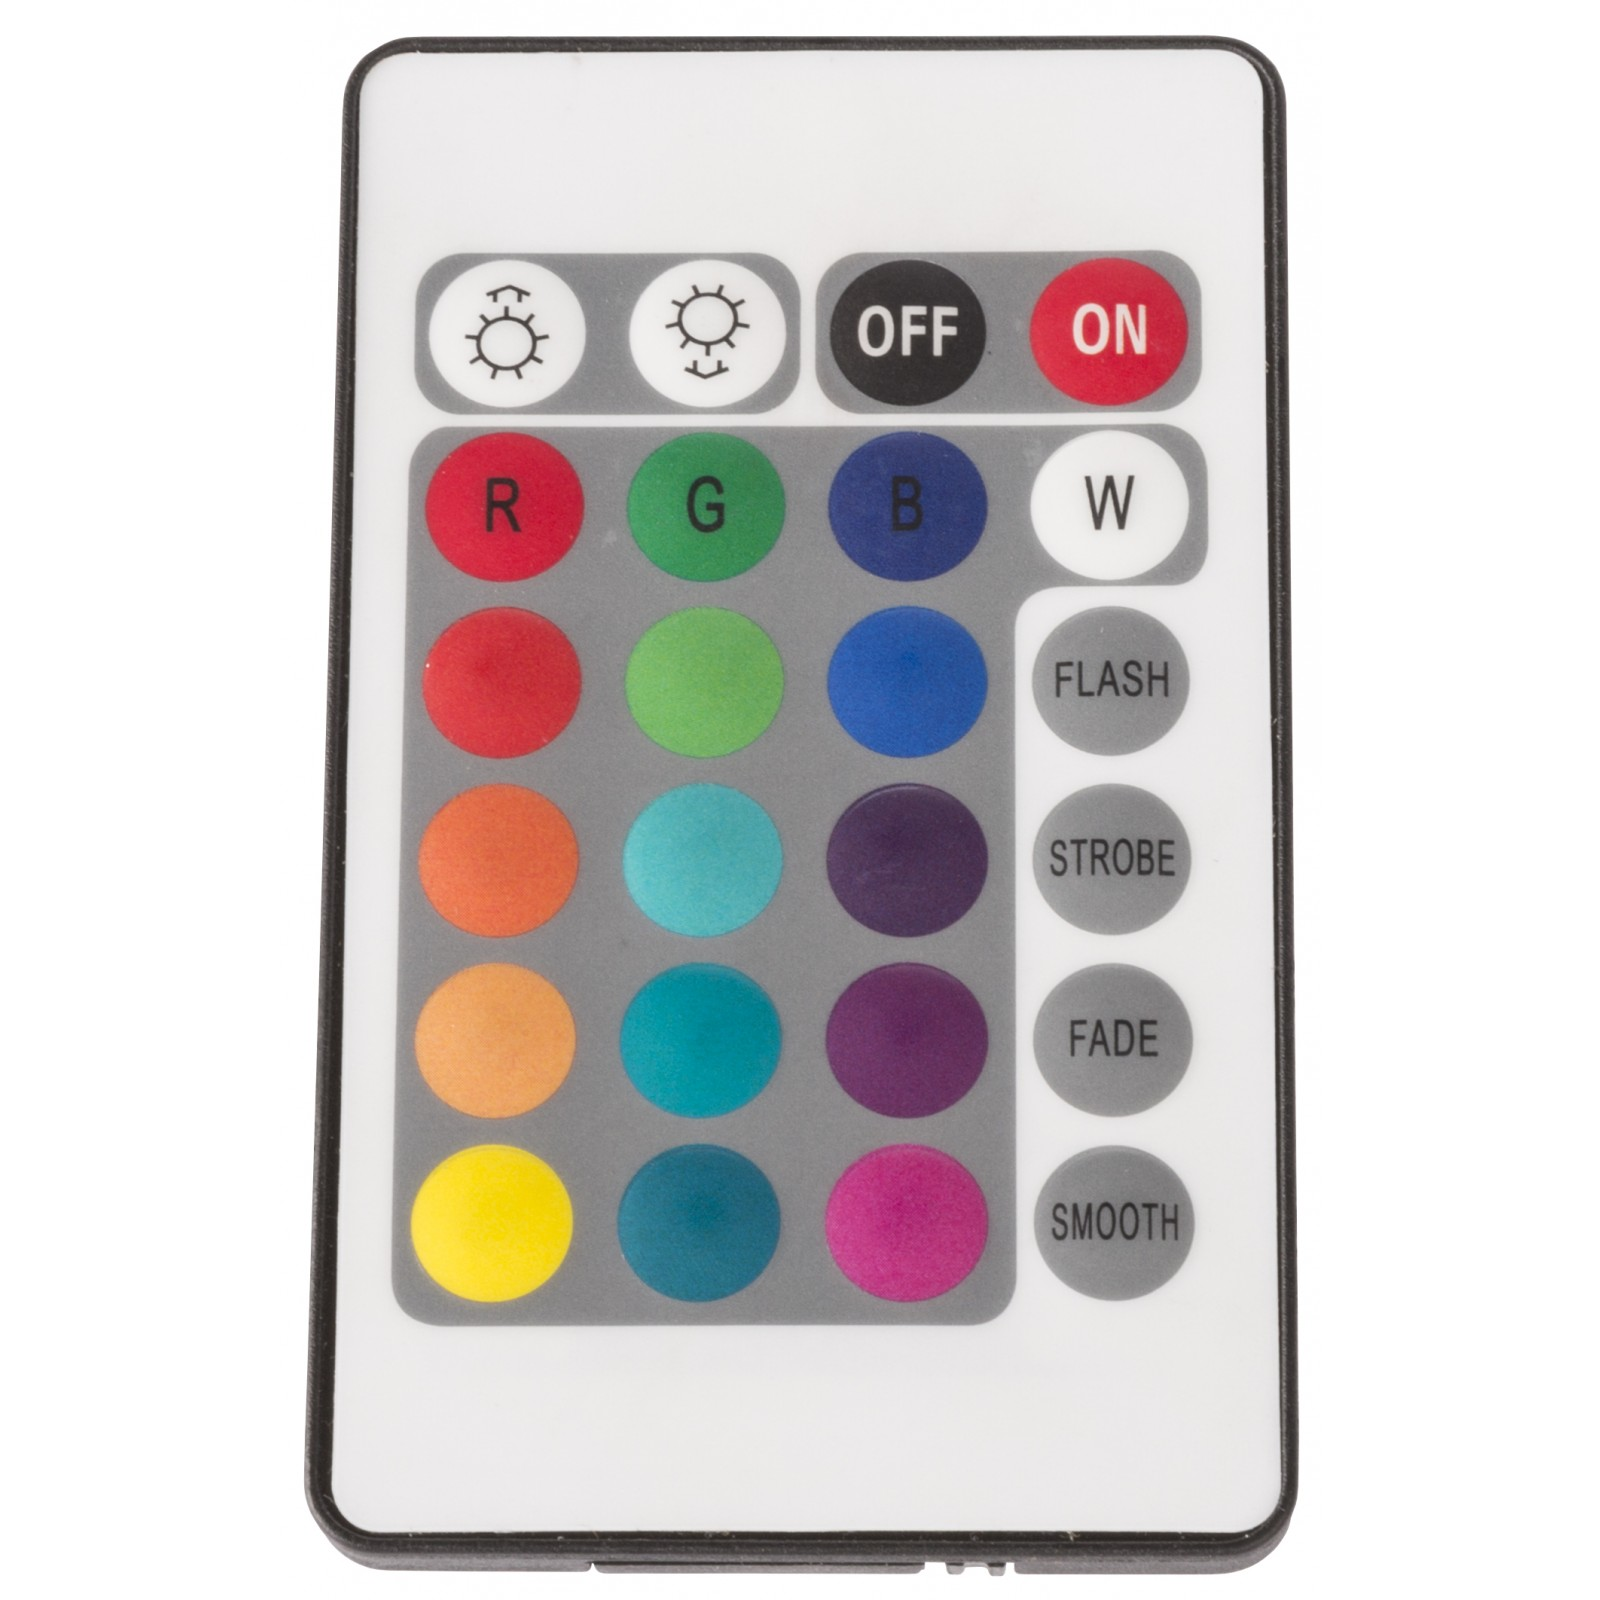 accu_color_remote